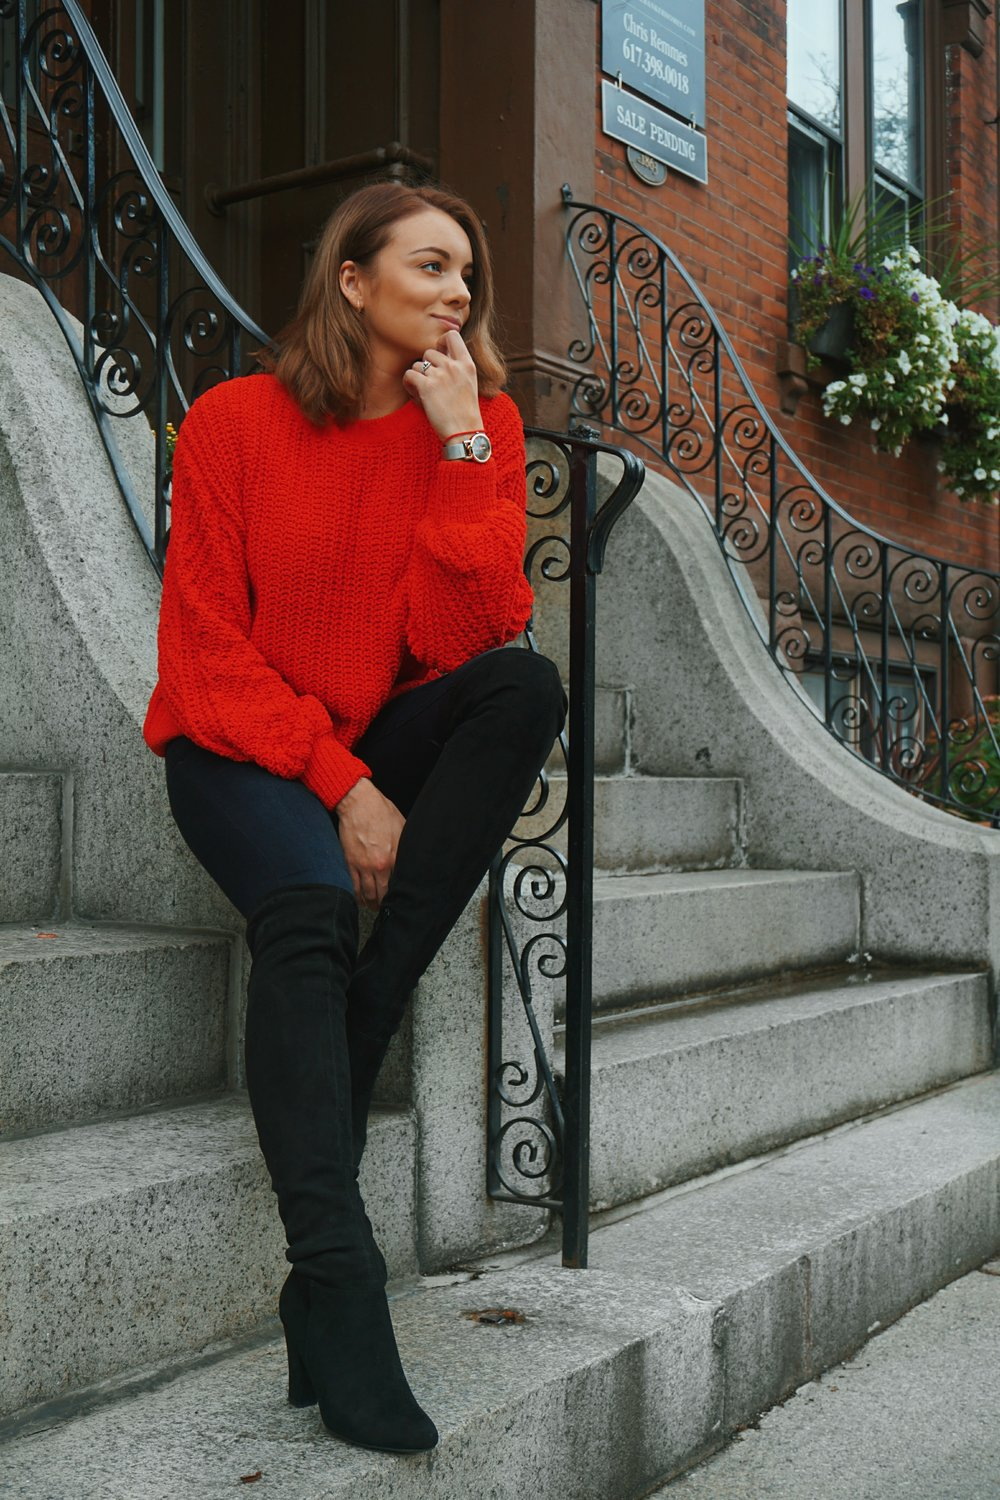 A blogger wearing a red cozy sweater, jeans, and black thigh high boots.